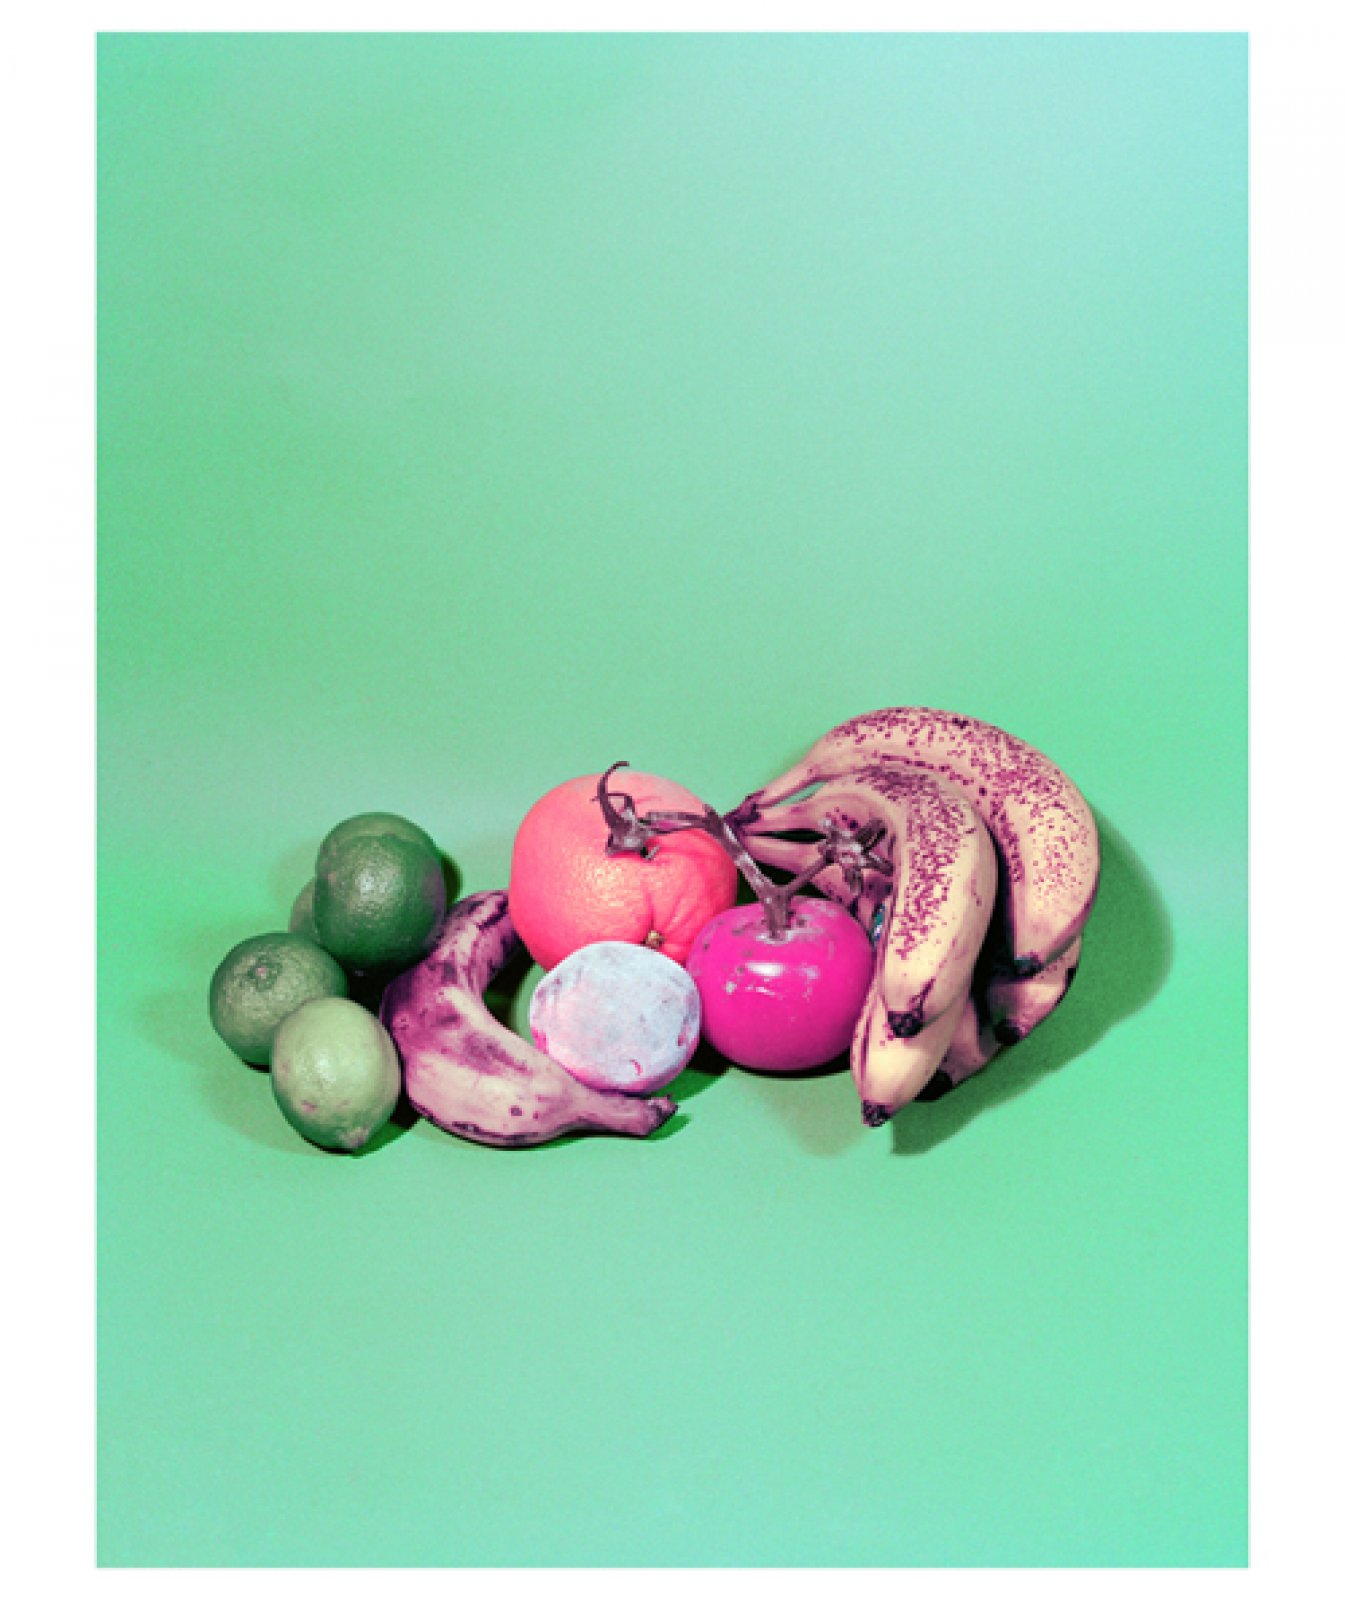 Green Fruit, 2011 © Sara Cwynar / courtesy Cooper Cole gallery, Toronto